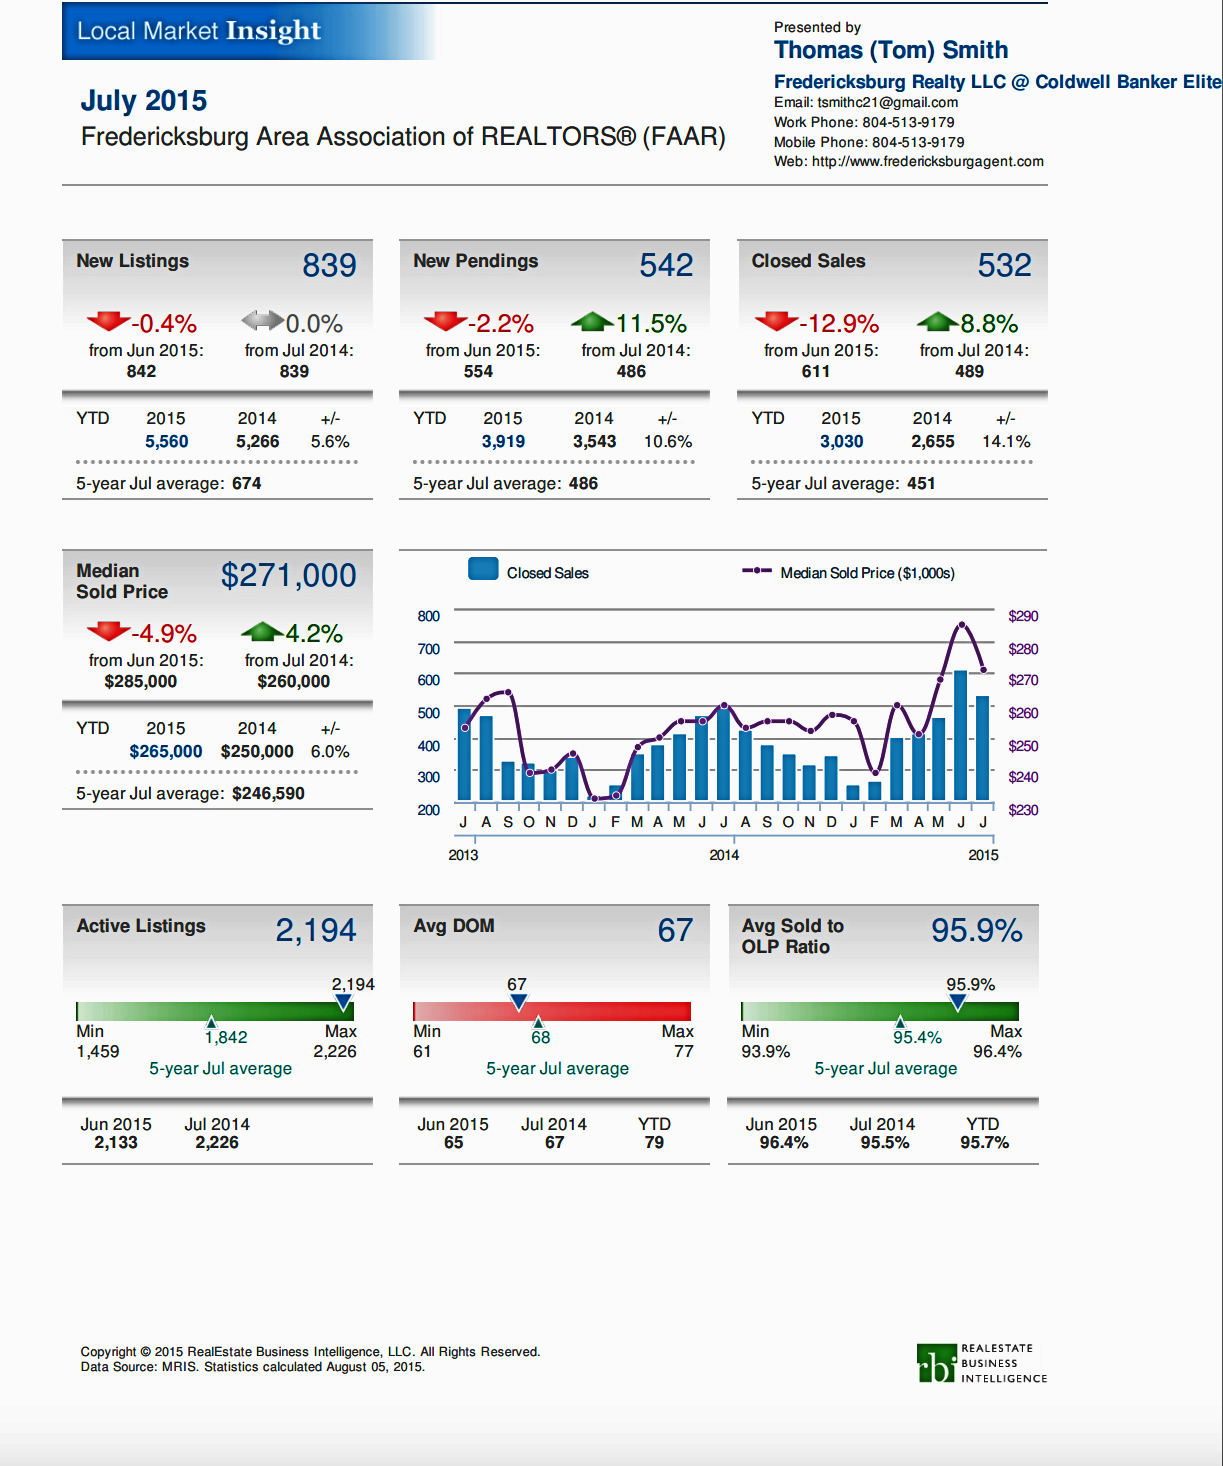 Fredericksburg Real Estate Market Report Image July, 2015